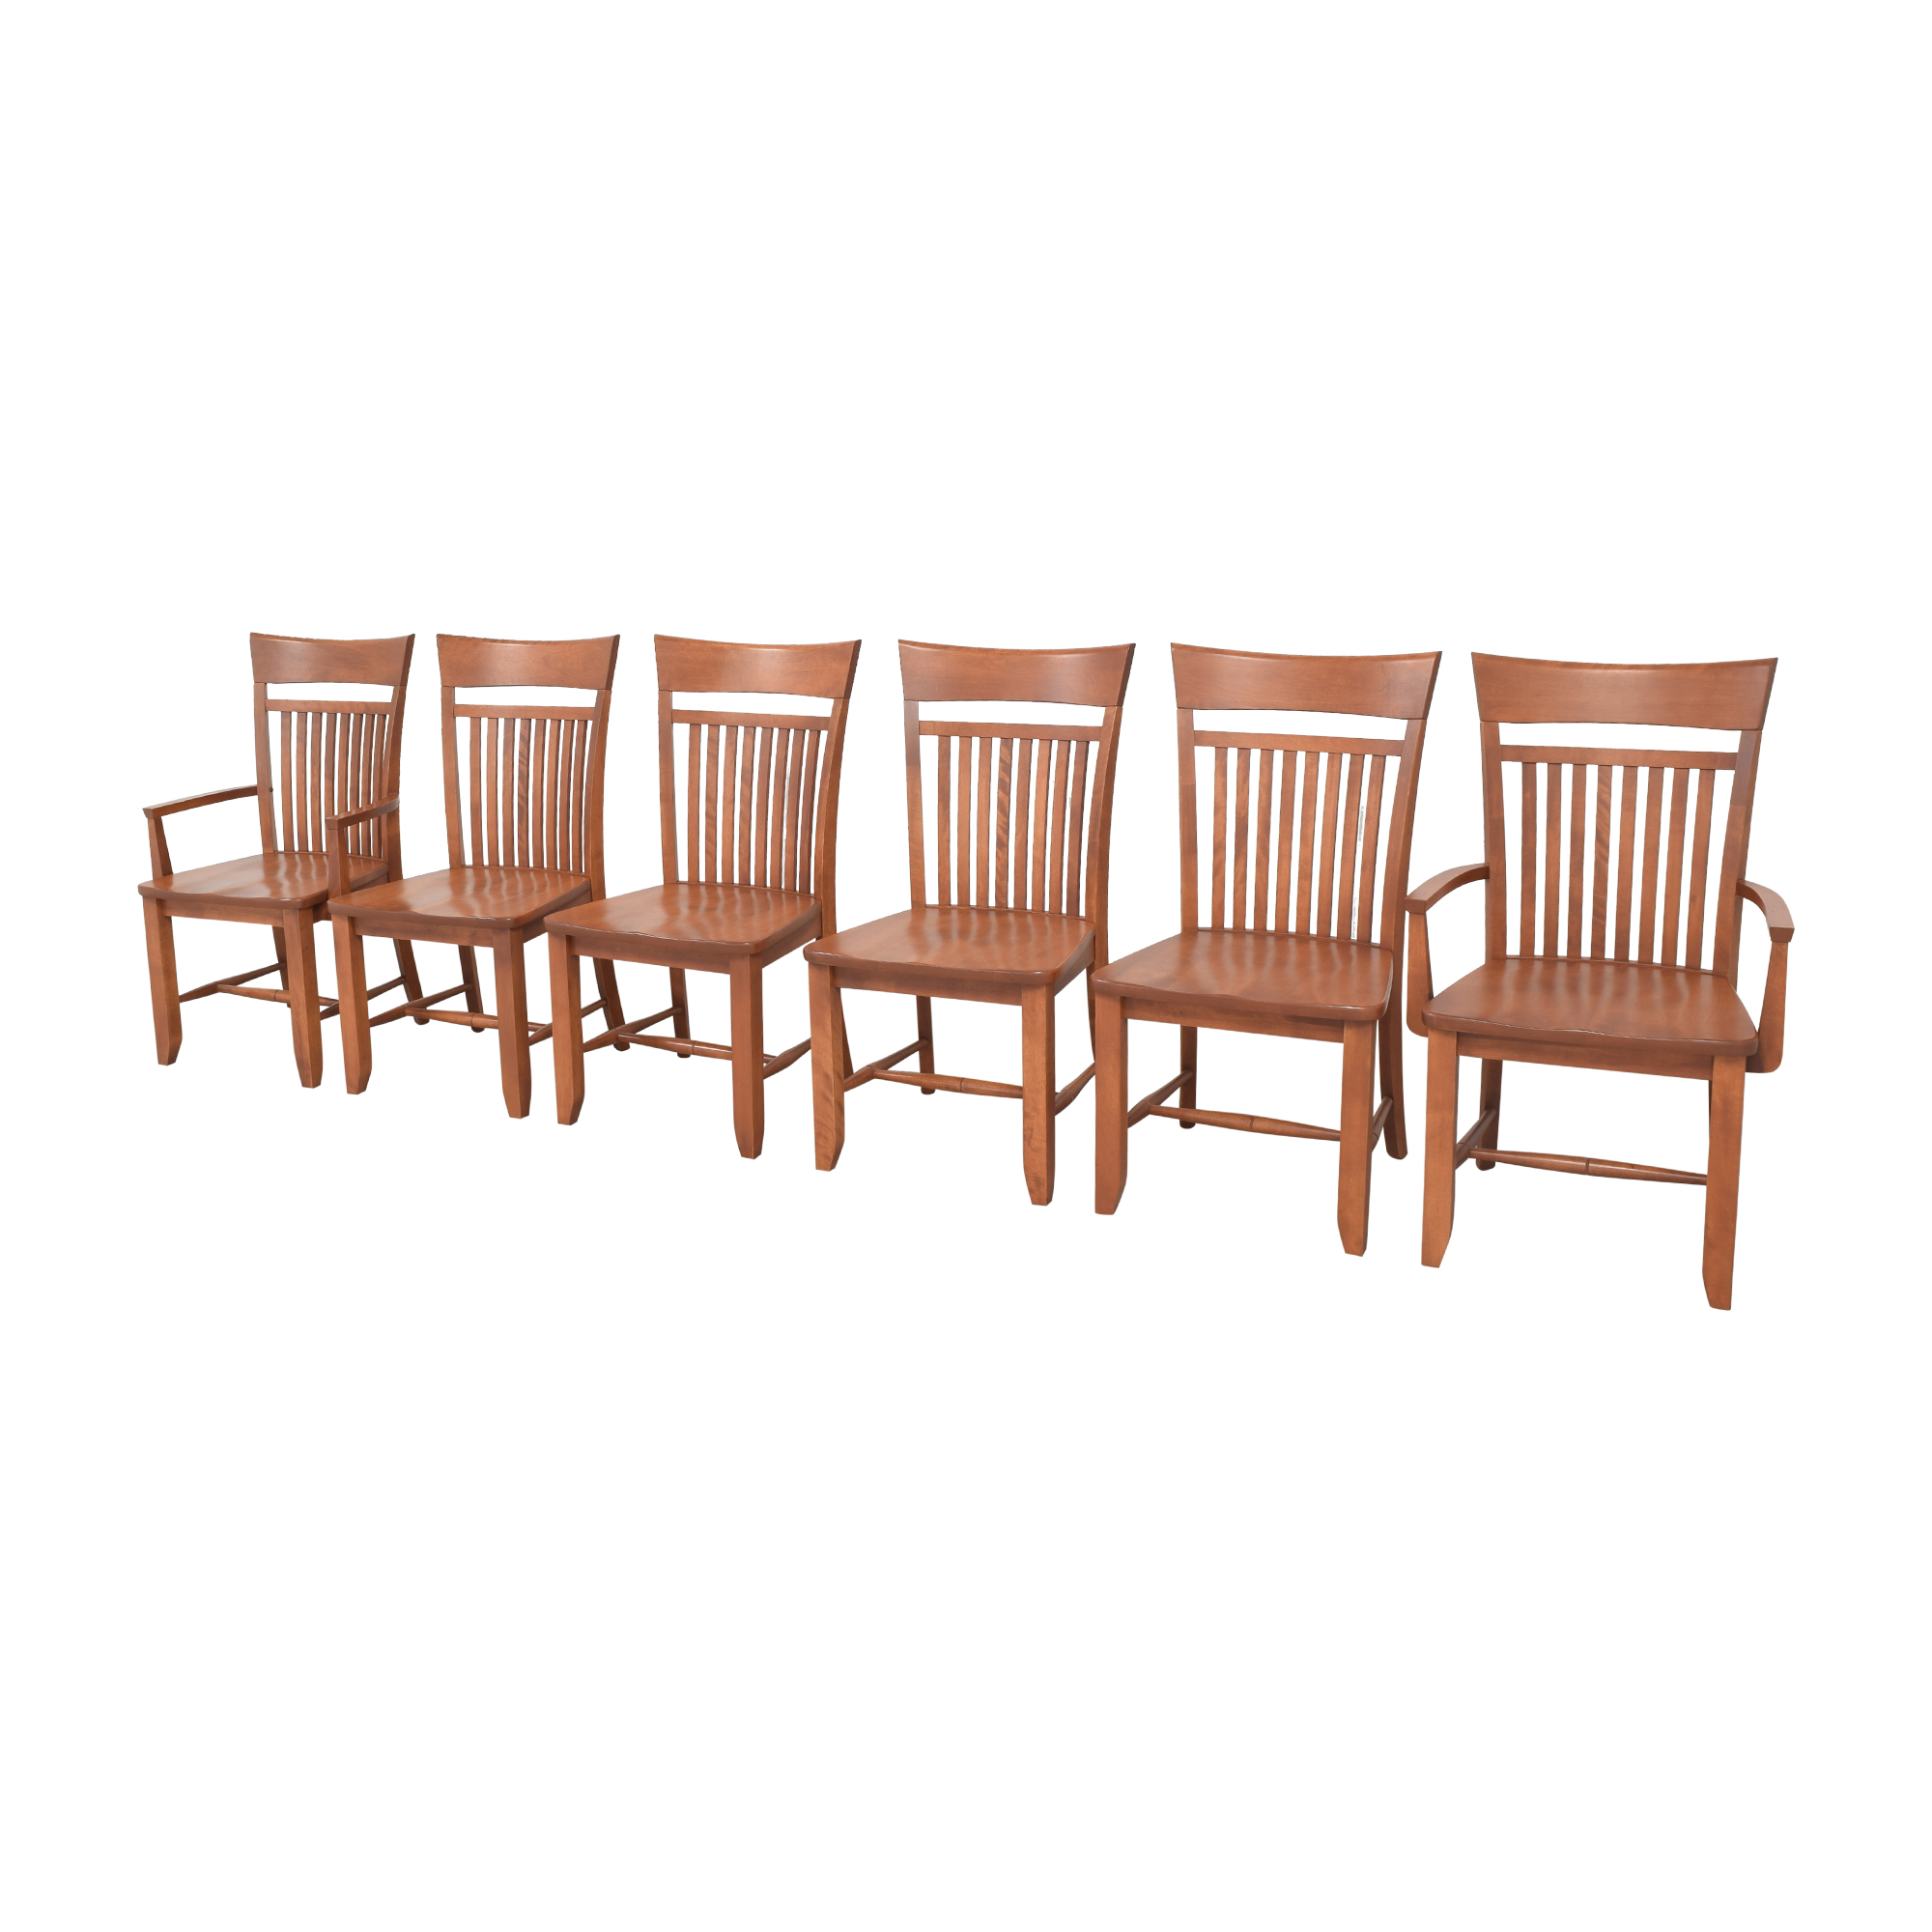 Thomasville Thomasville Dining Chairs Dining Chairs